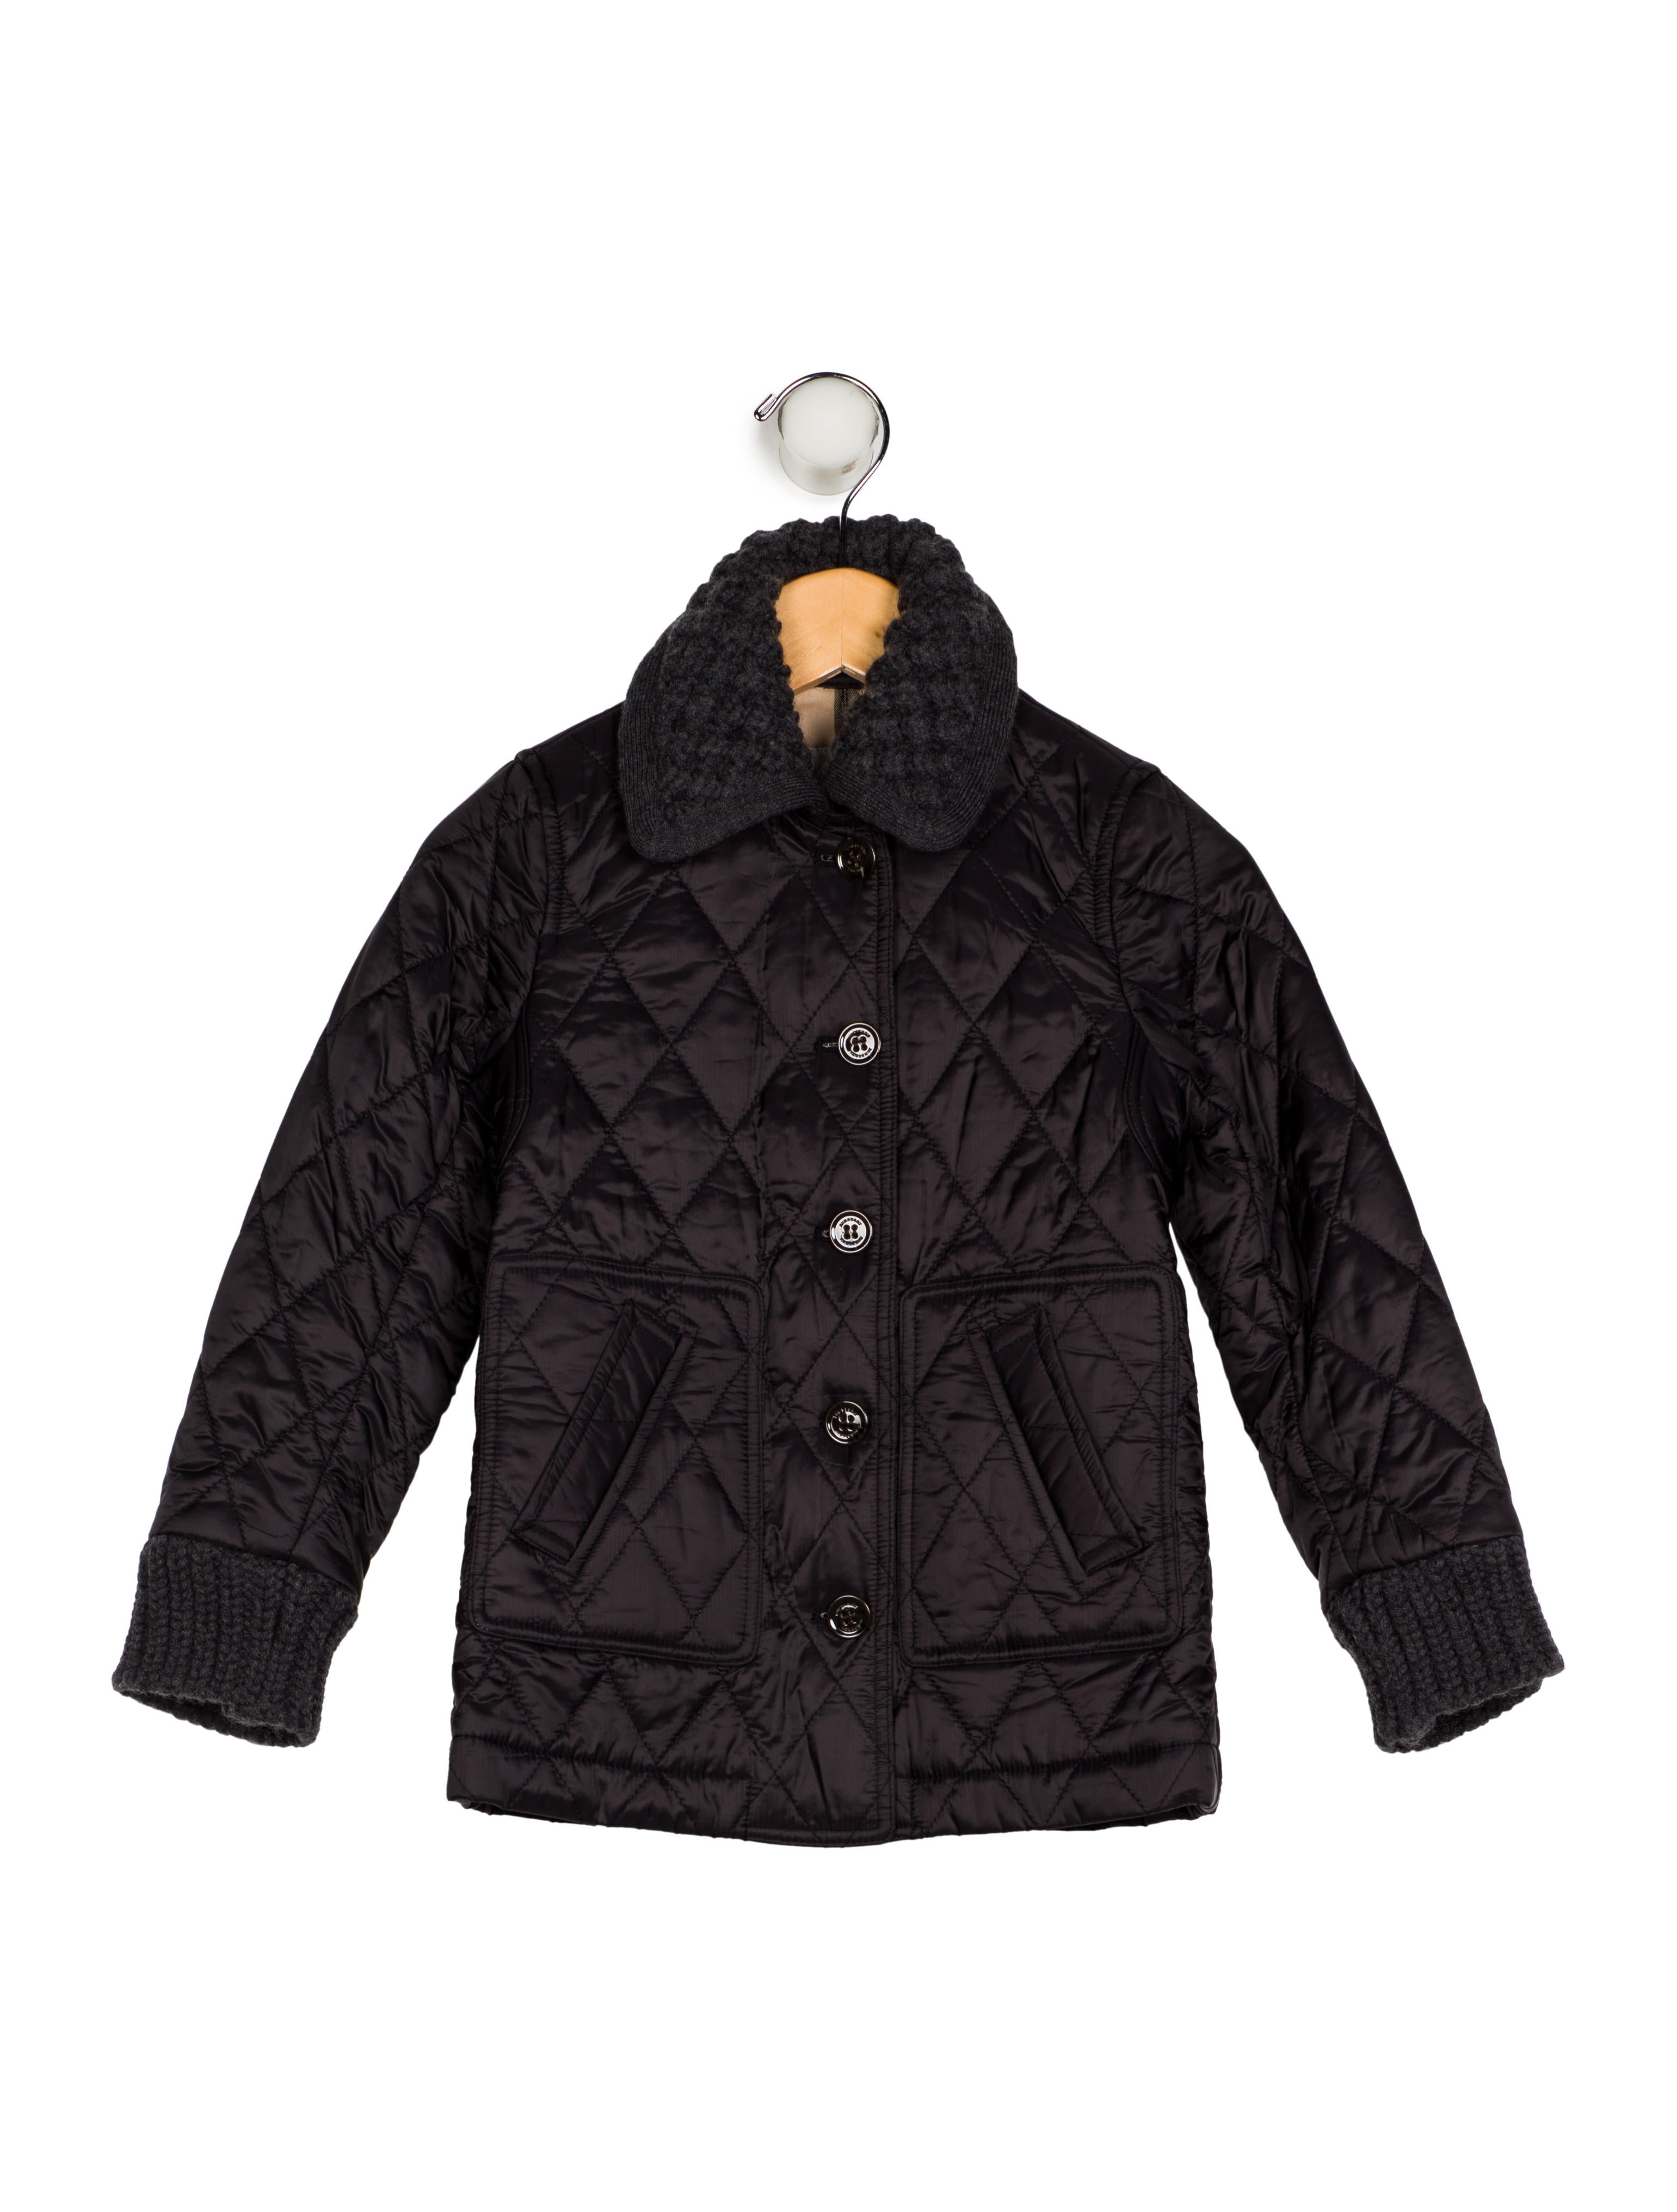 Burberry Girls Collar Quilted Jacket Girls Bur99005 The Realreal